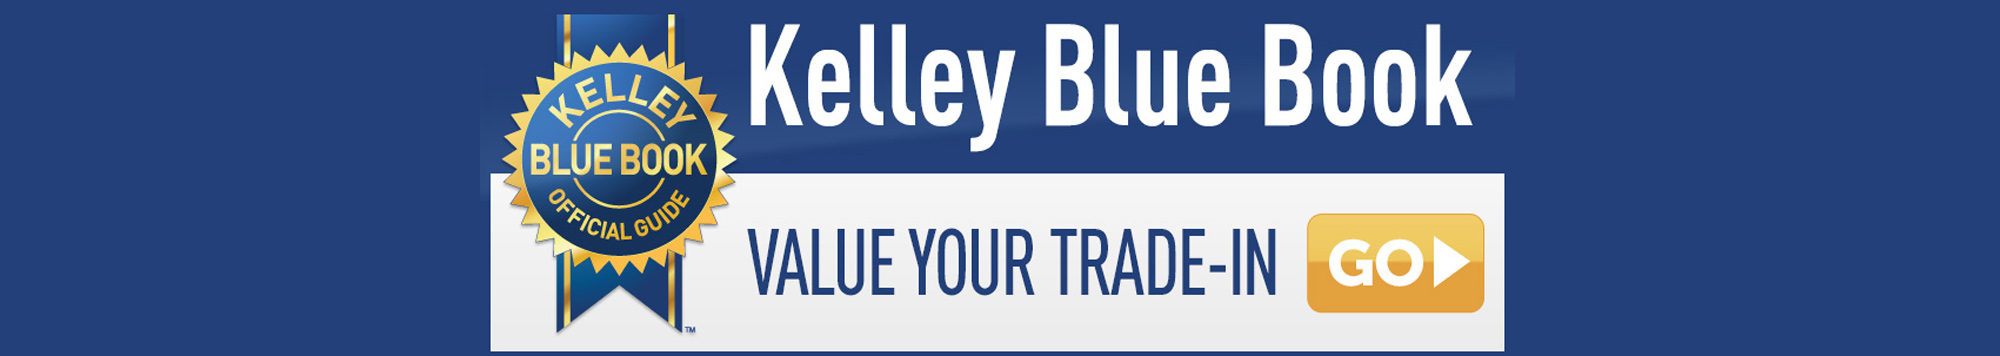 Contemporary Kelly Blue Book Value Of Used Cars Images - Classic ...